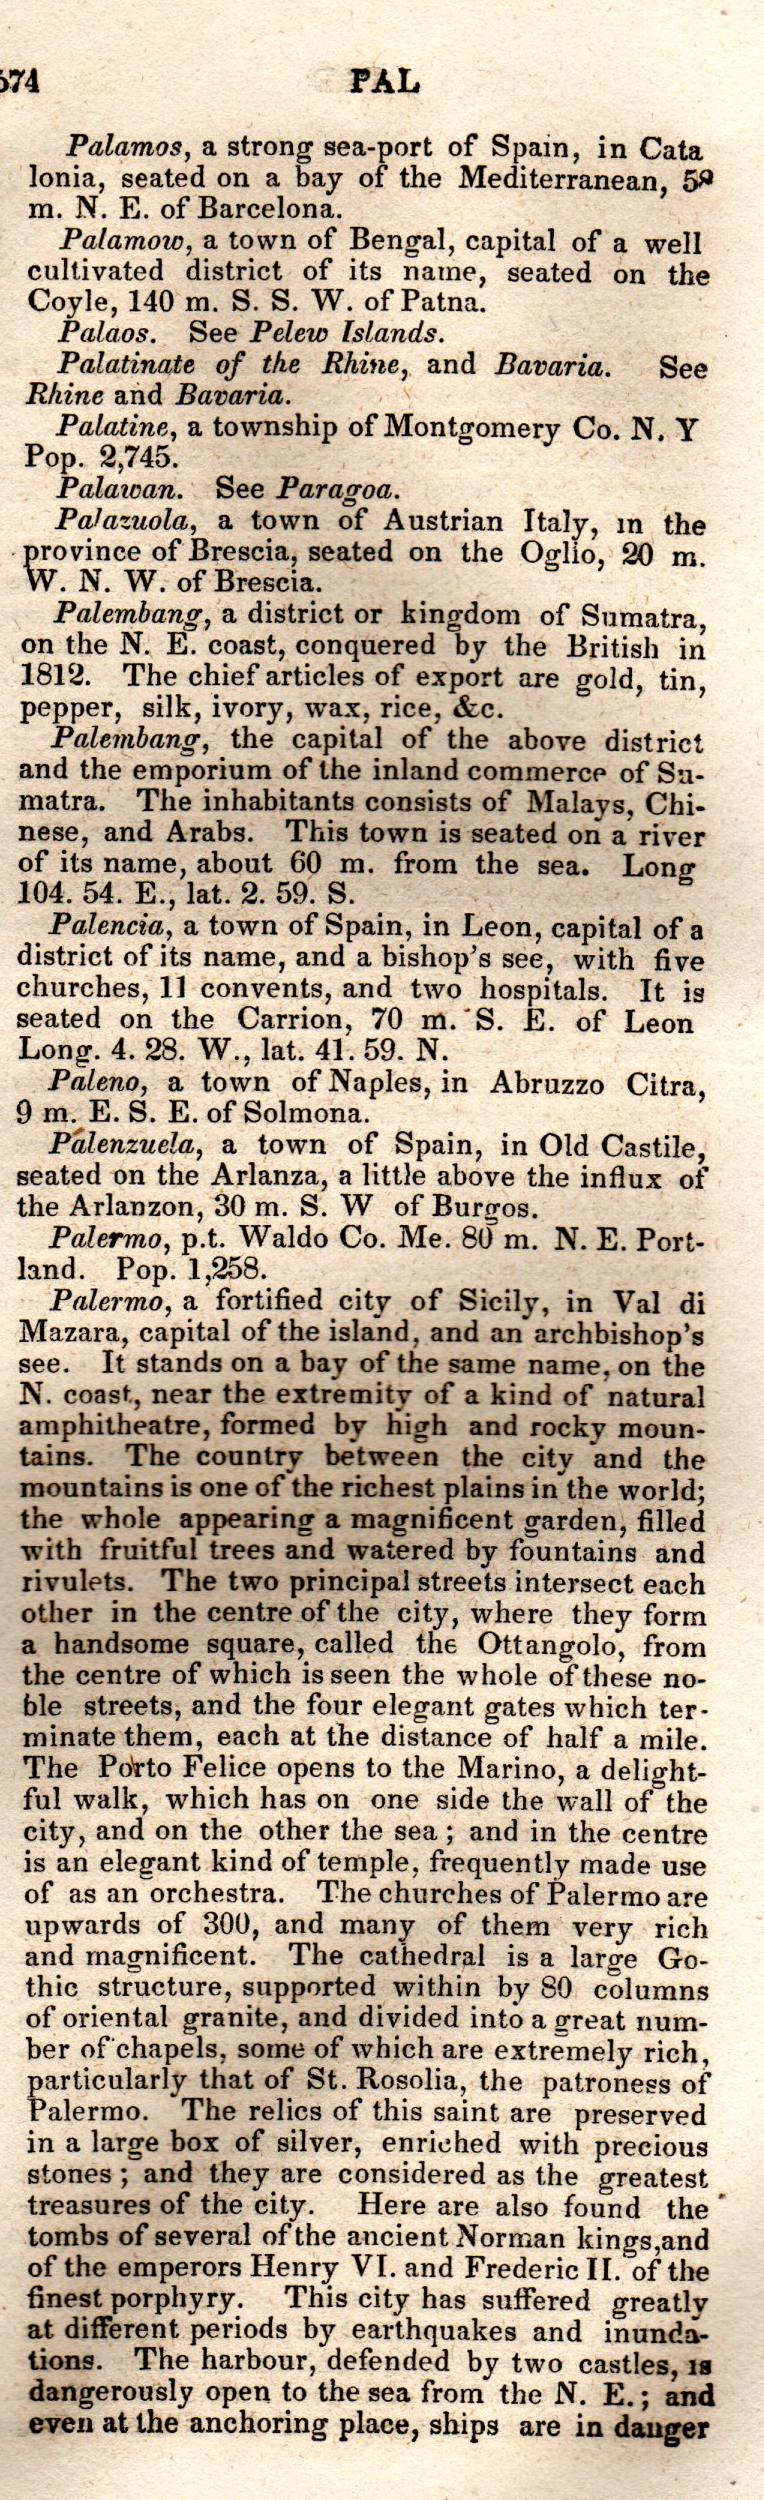 Brookes' Universal Gazetteer (1850), Page  574  Right Column